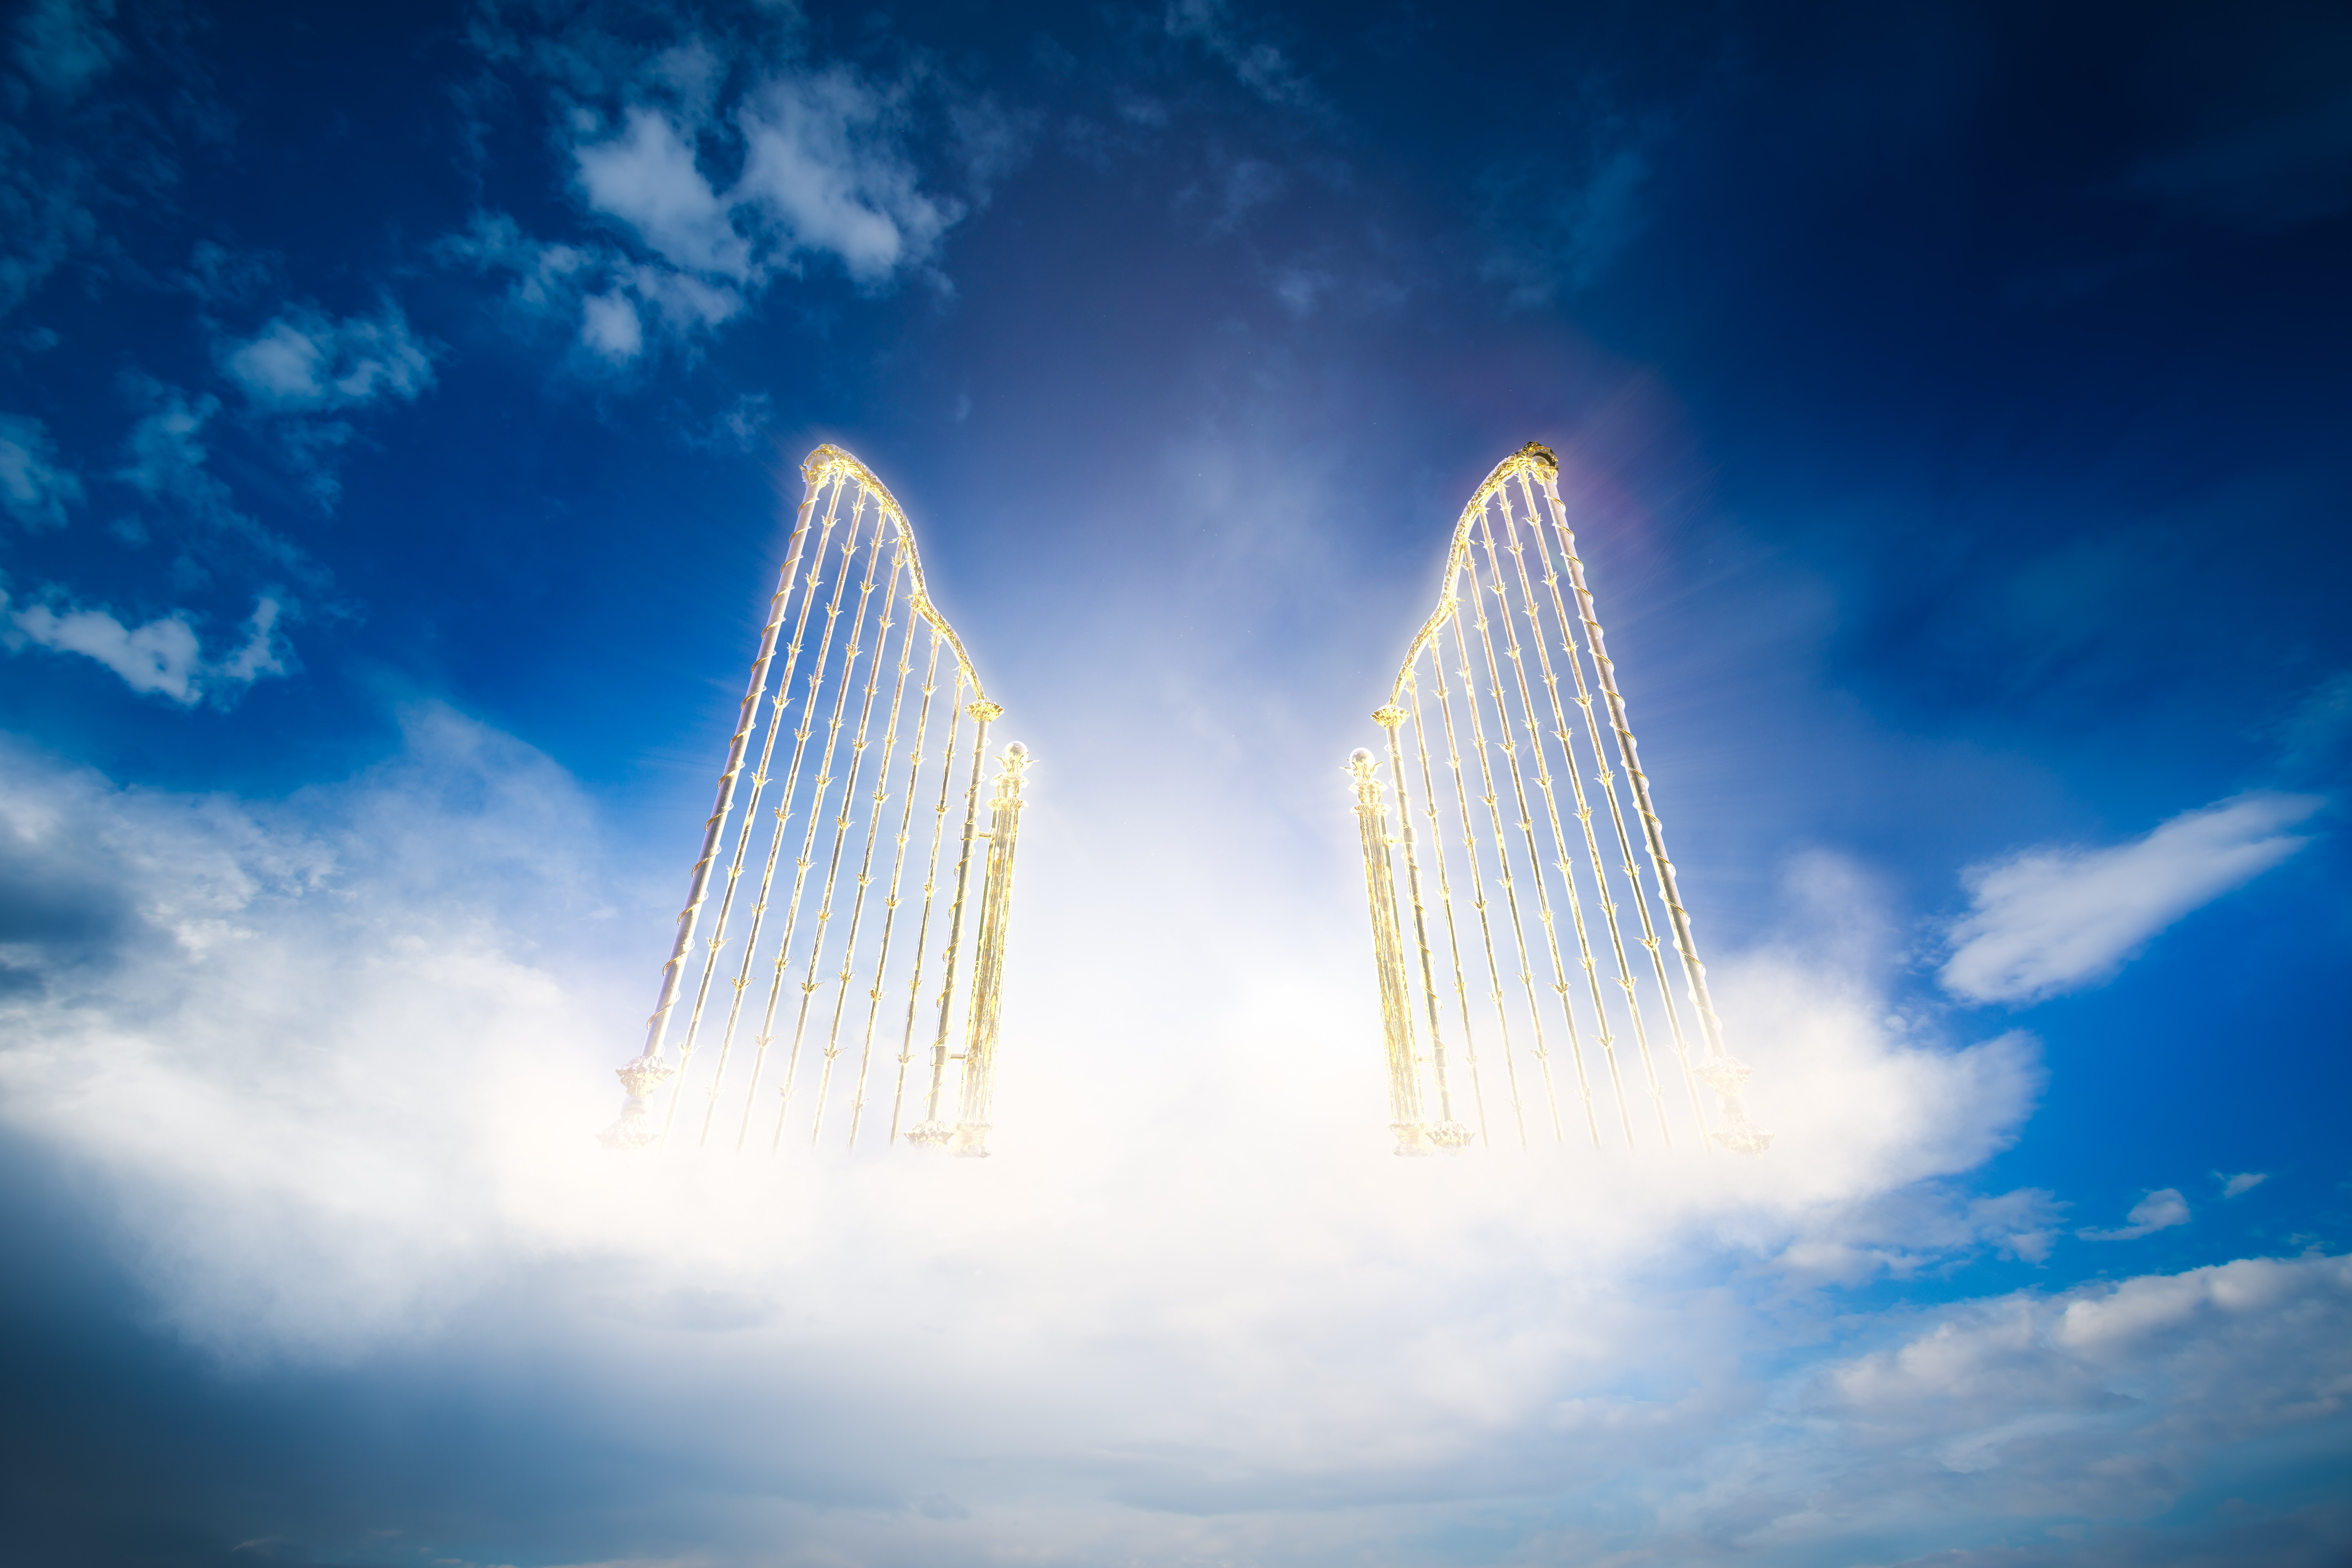 Clouds and heaven's gates | Source: Shutterstock